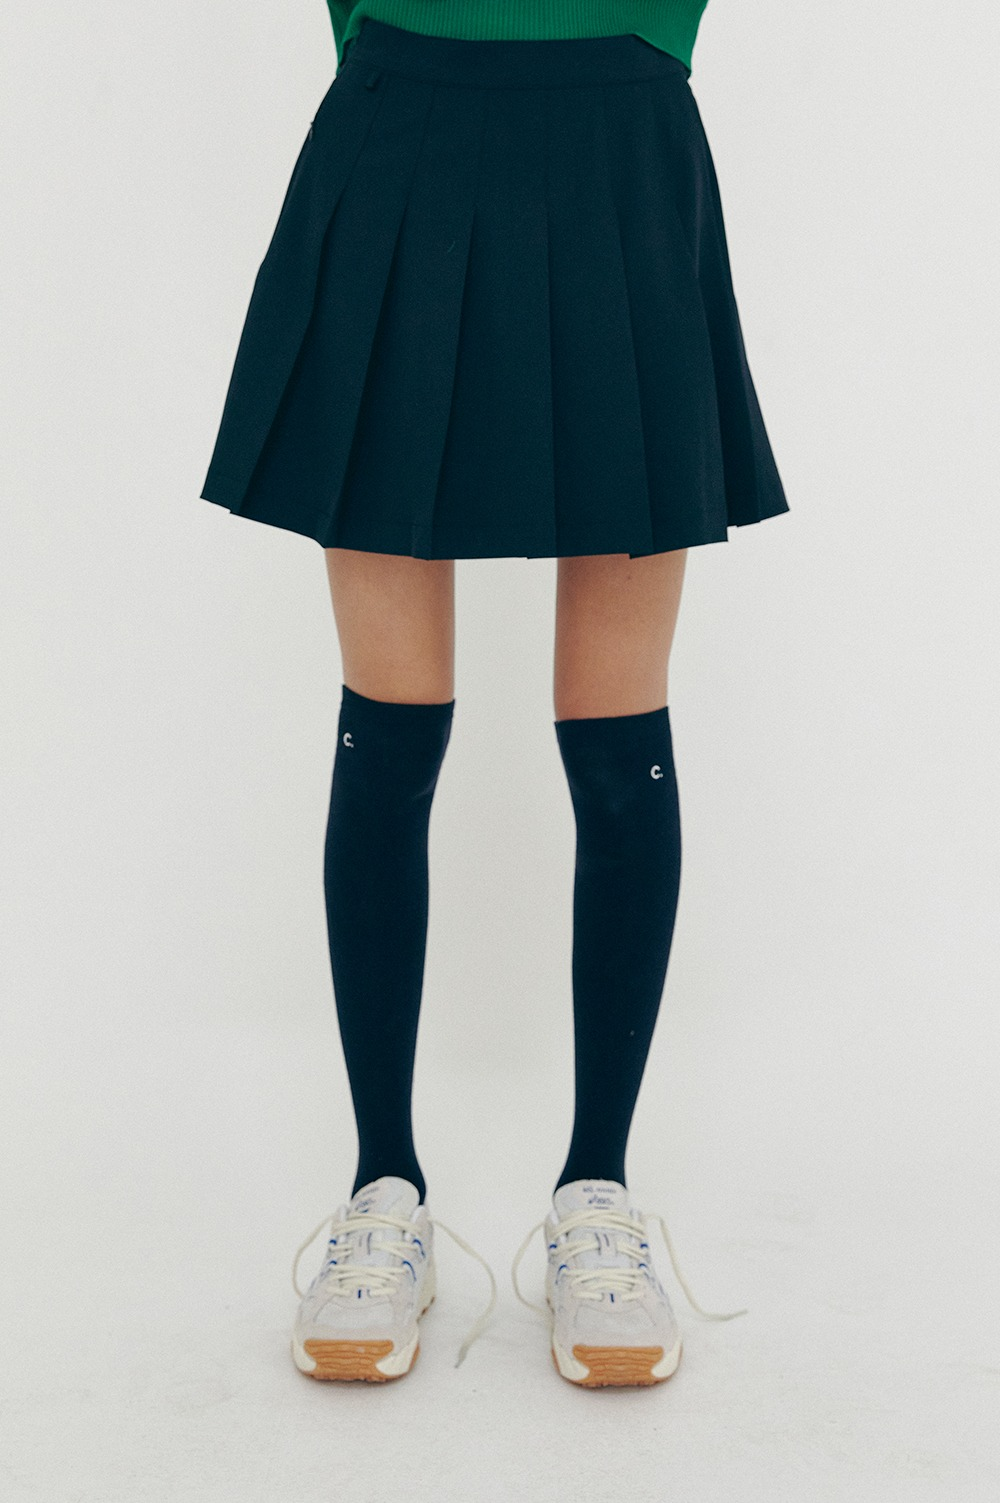 clove - [SS21 clove] New Pleated Skirt Navy